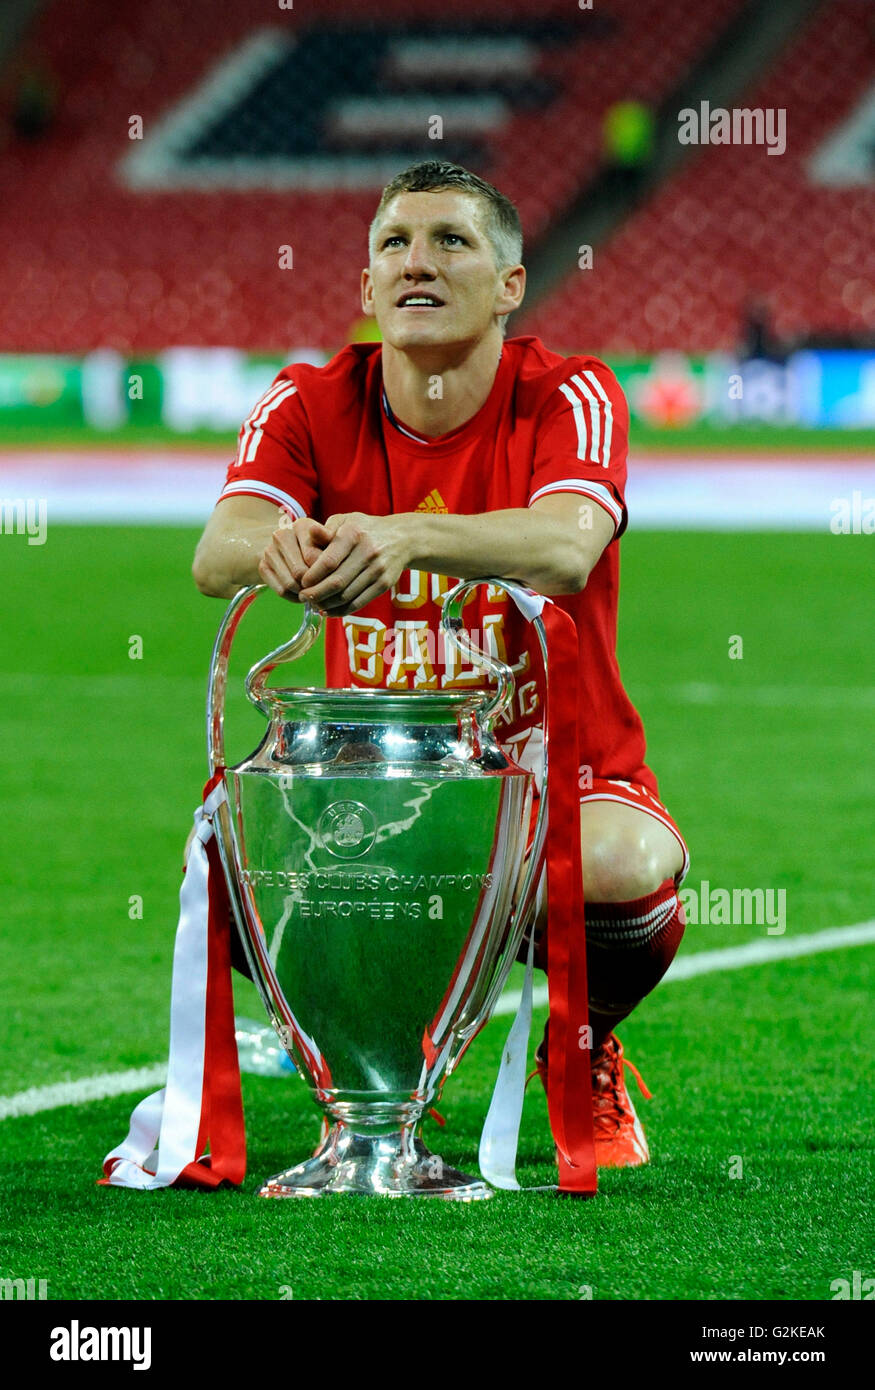 Bastian Schweinsteiger With The Trophy Uefa Champions League Final Stock Photo Alamy